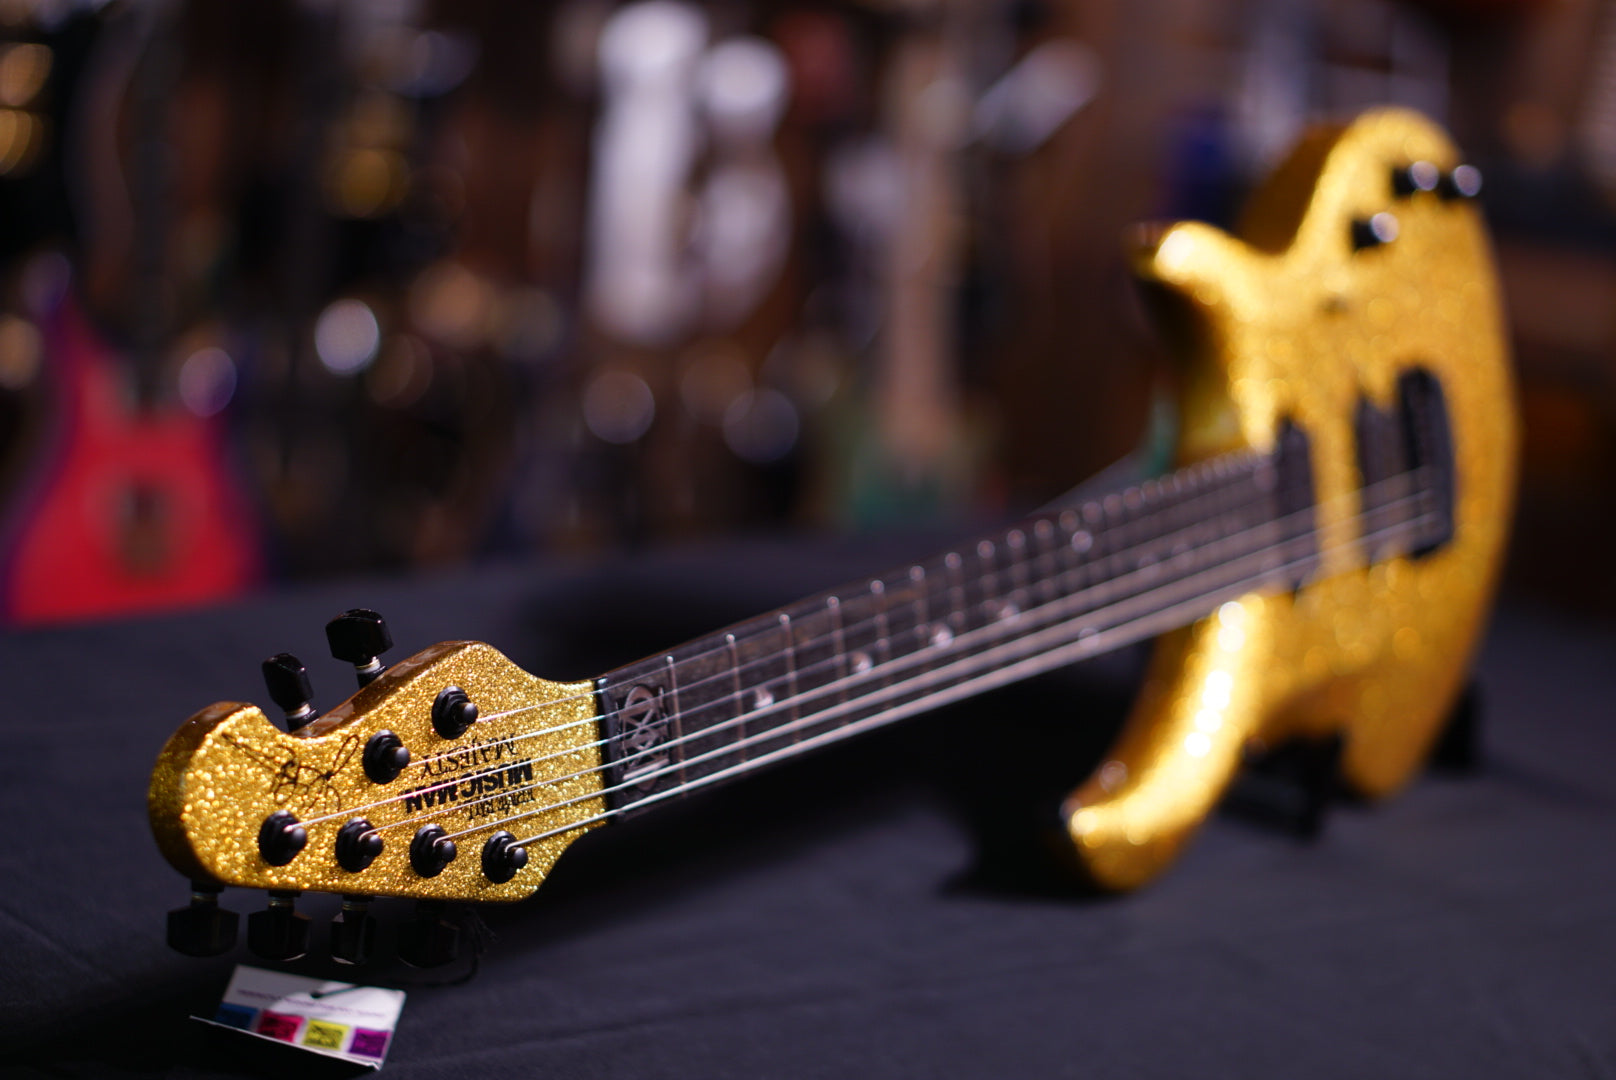 Musicman Majesty BFR gold sparkle Namm Limited